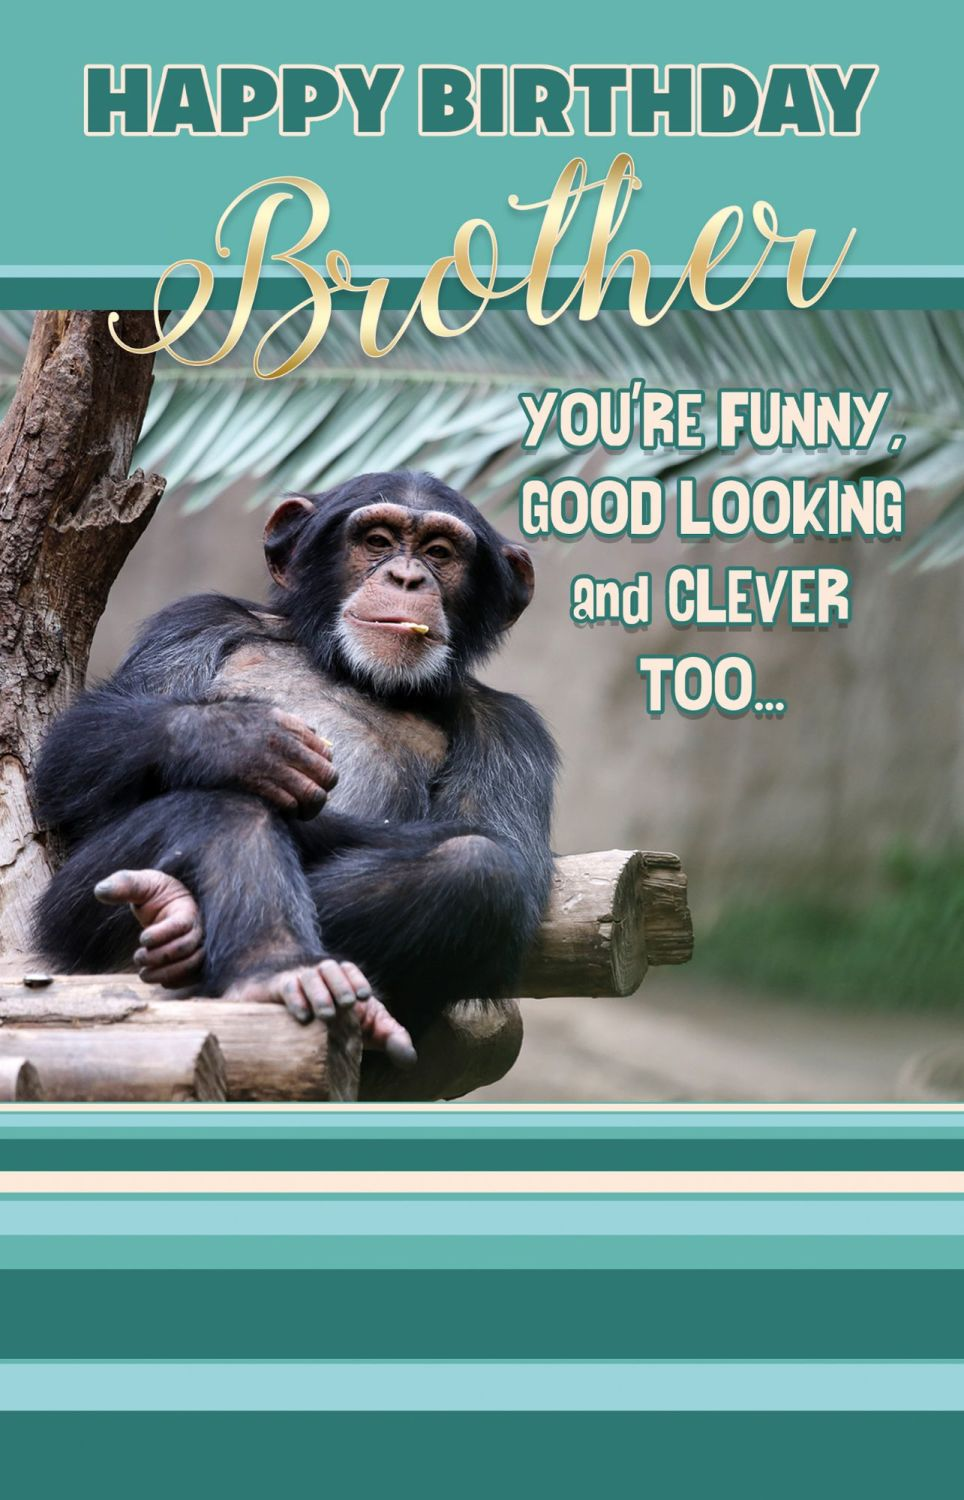 Funny Monkey Brother Birthday Card - YOU'RE Funny GOOD Looking & CLEVER Too